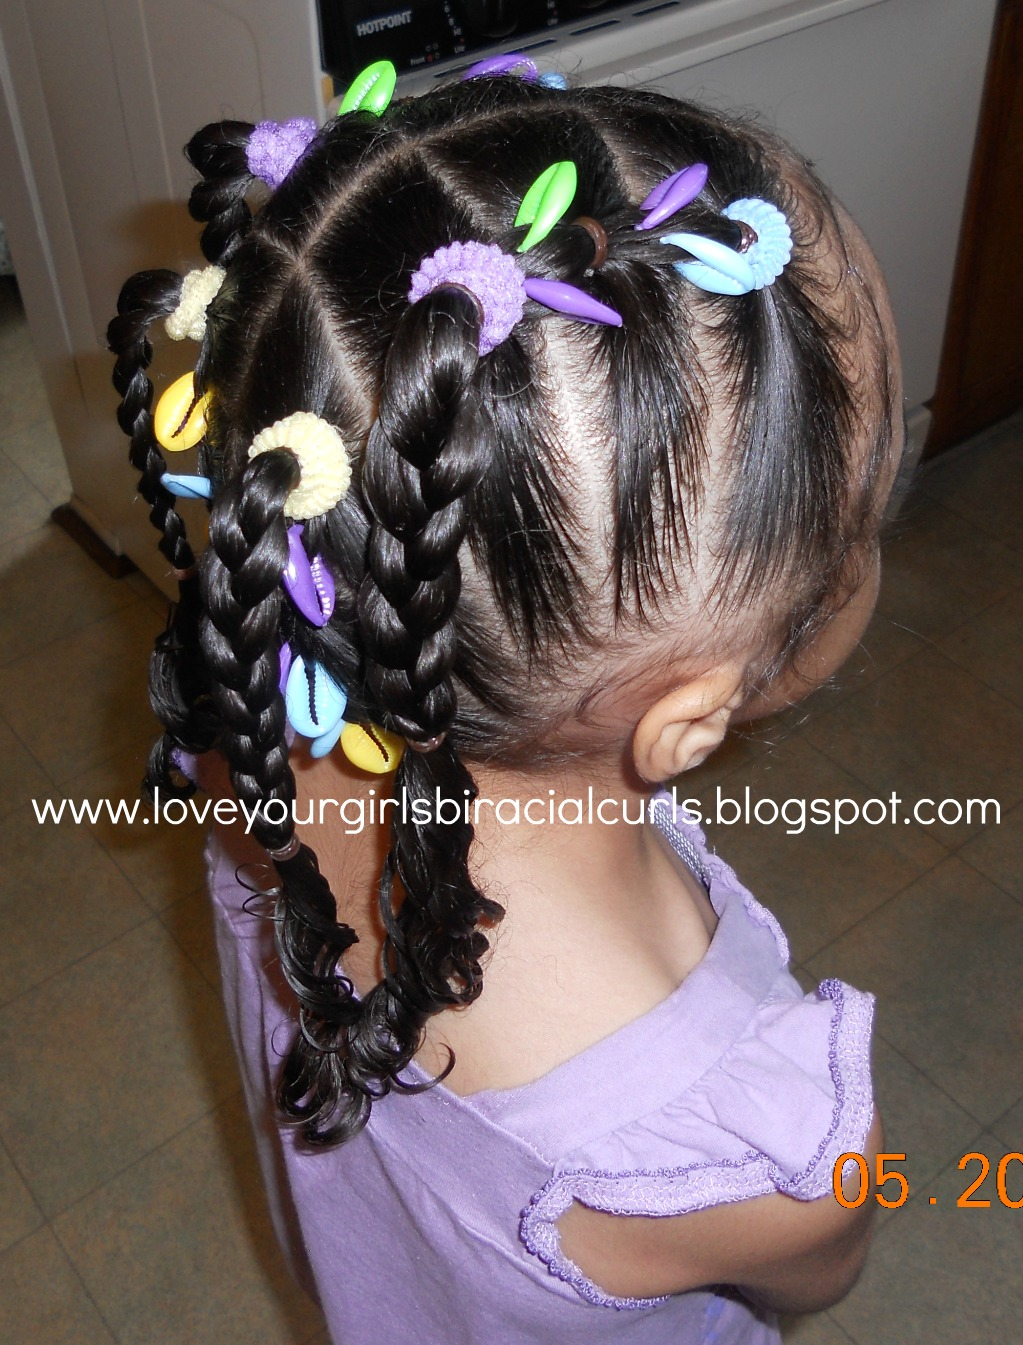 love your girls biracial curls: diva r's little mermaid inspired